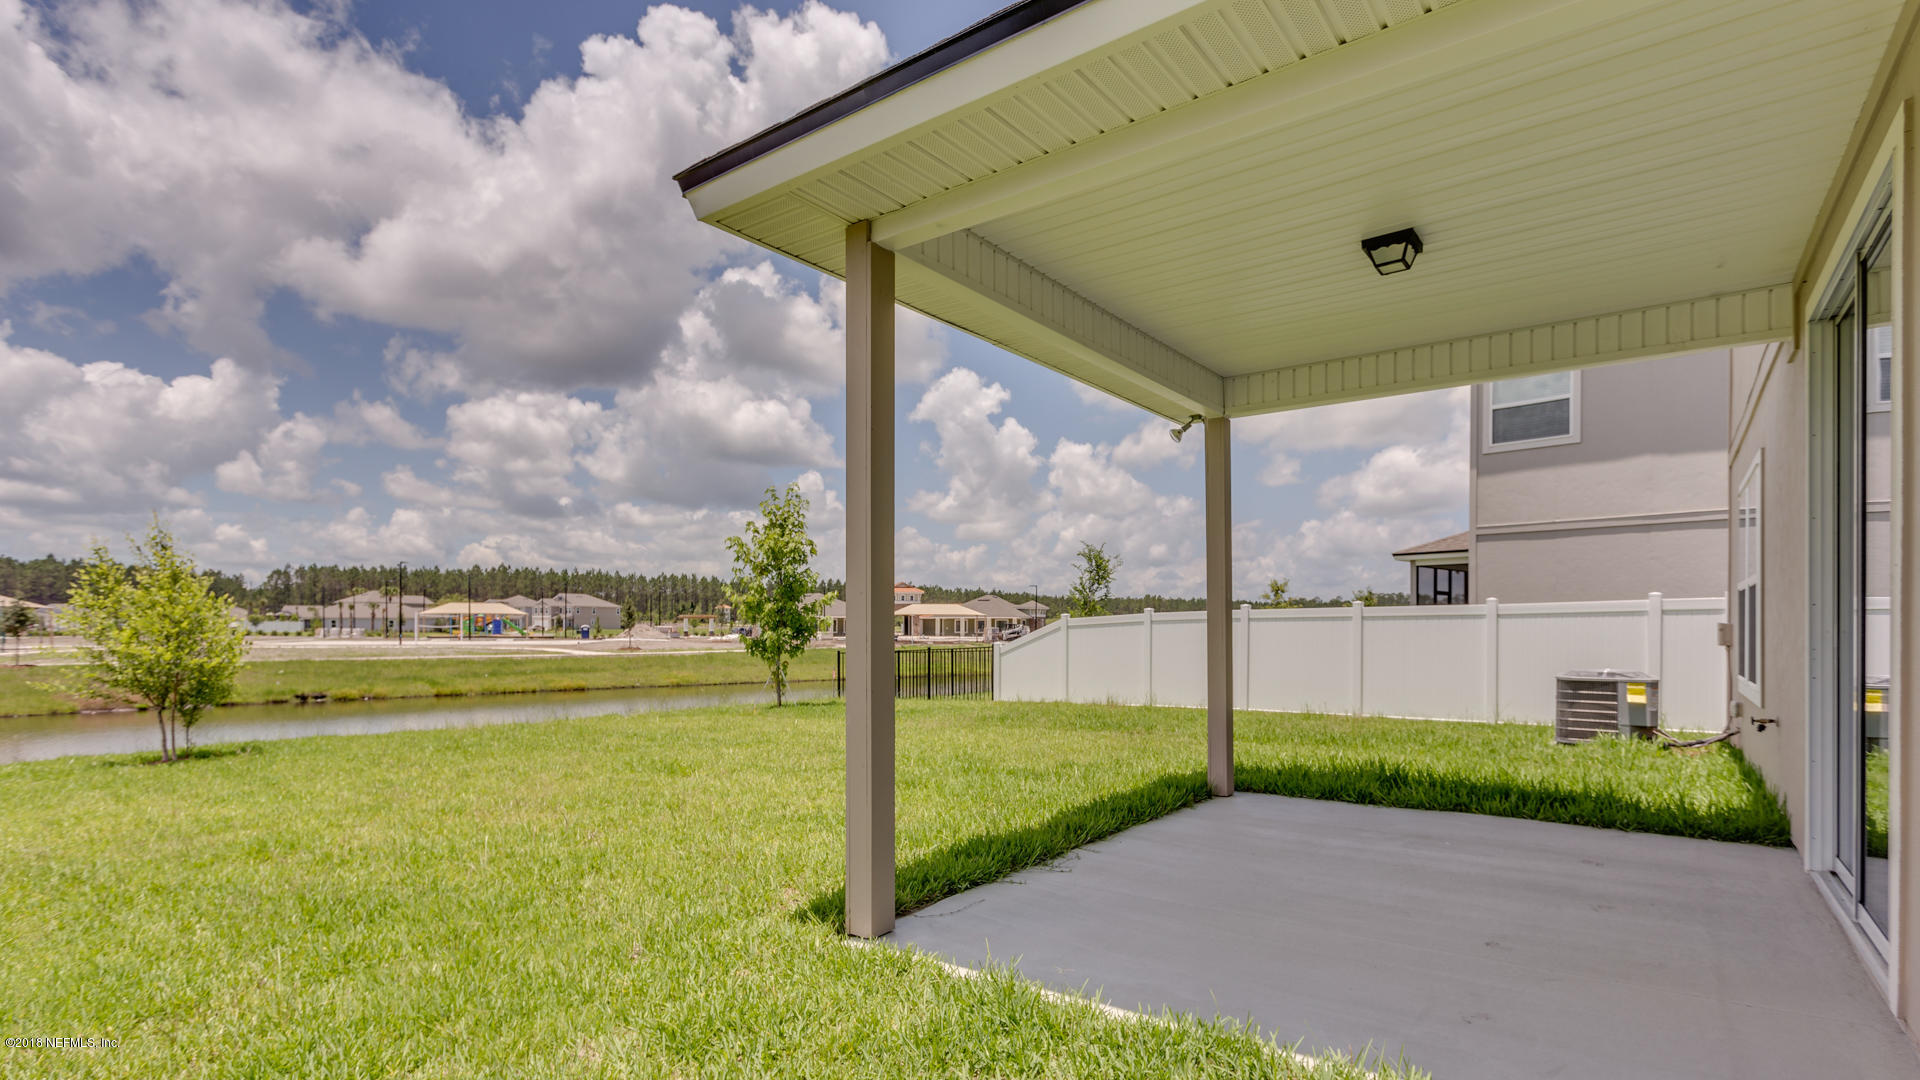 8154 CAPE FOX, JACKSONVILLE, FLORIDA 32222, 3 Bedrooms Bedrooms, ,2 BathroomsBathrooms,Residential - single family,For sale,CAPE FOX,900787